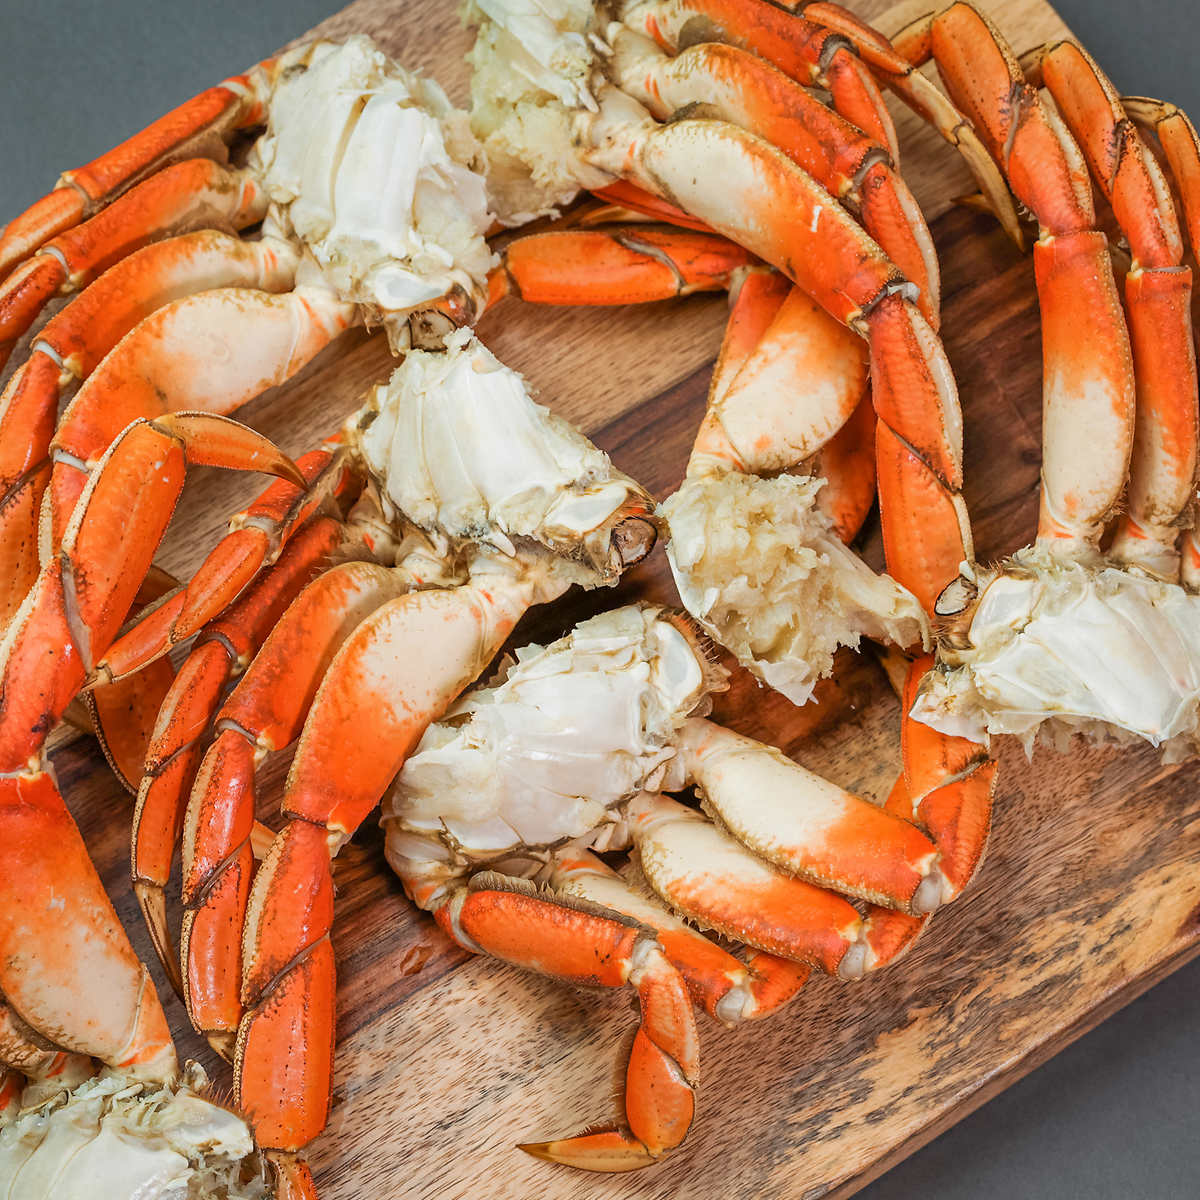 Northwest Fish Wild Dungeness Crab Sections 10 Lbs